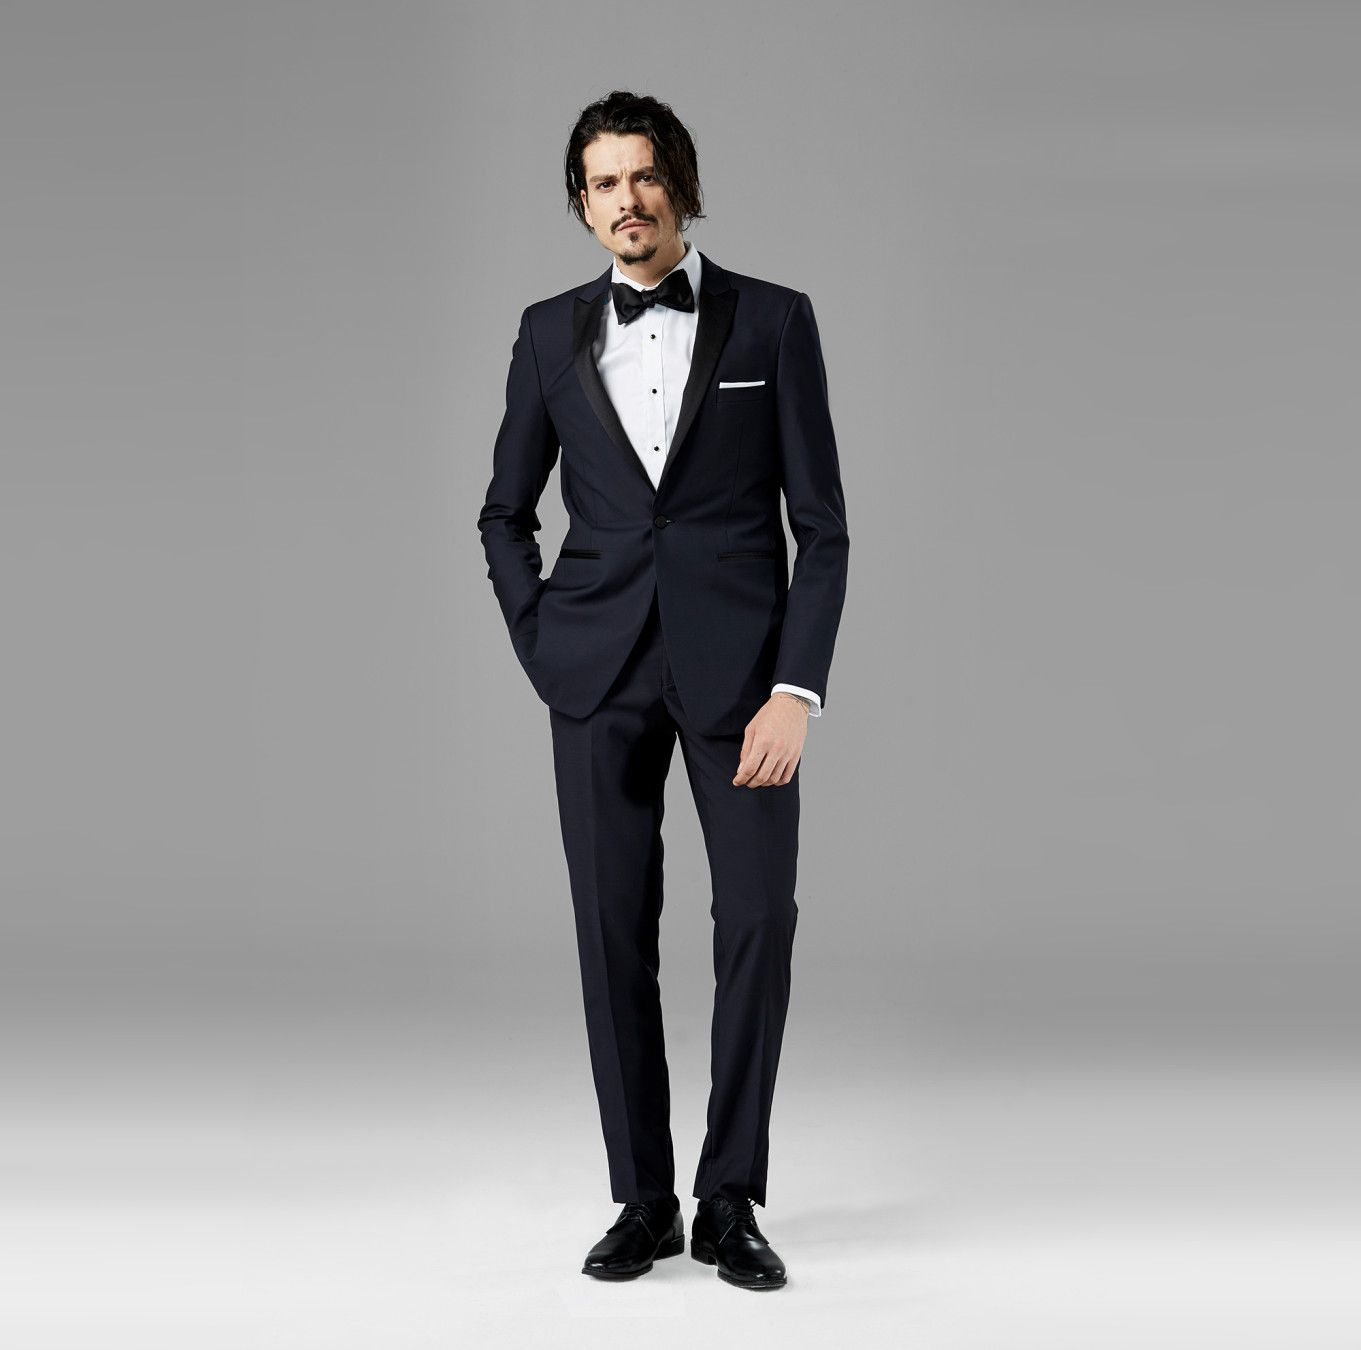 How to Rent a Tux Last-Minute, Because Hey, You're a Busy Guy